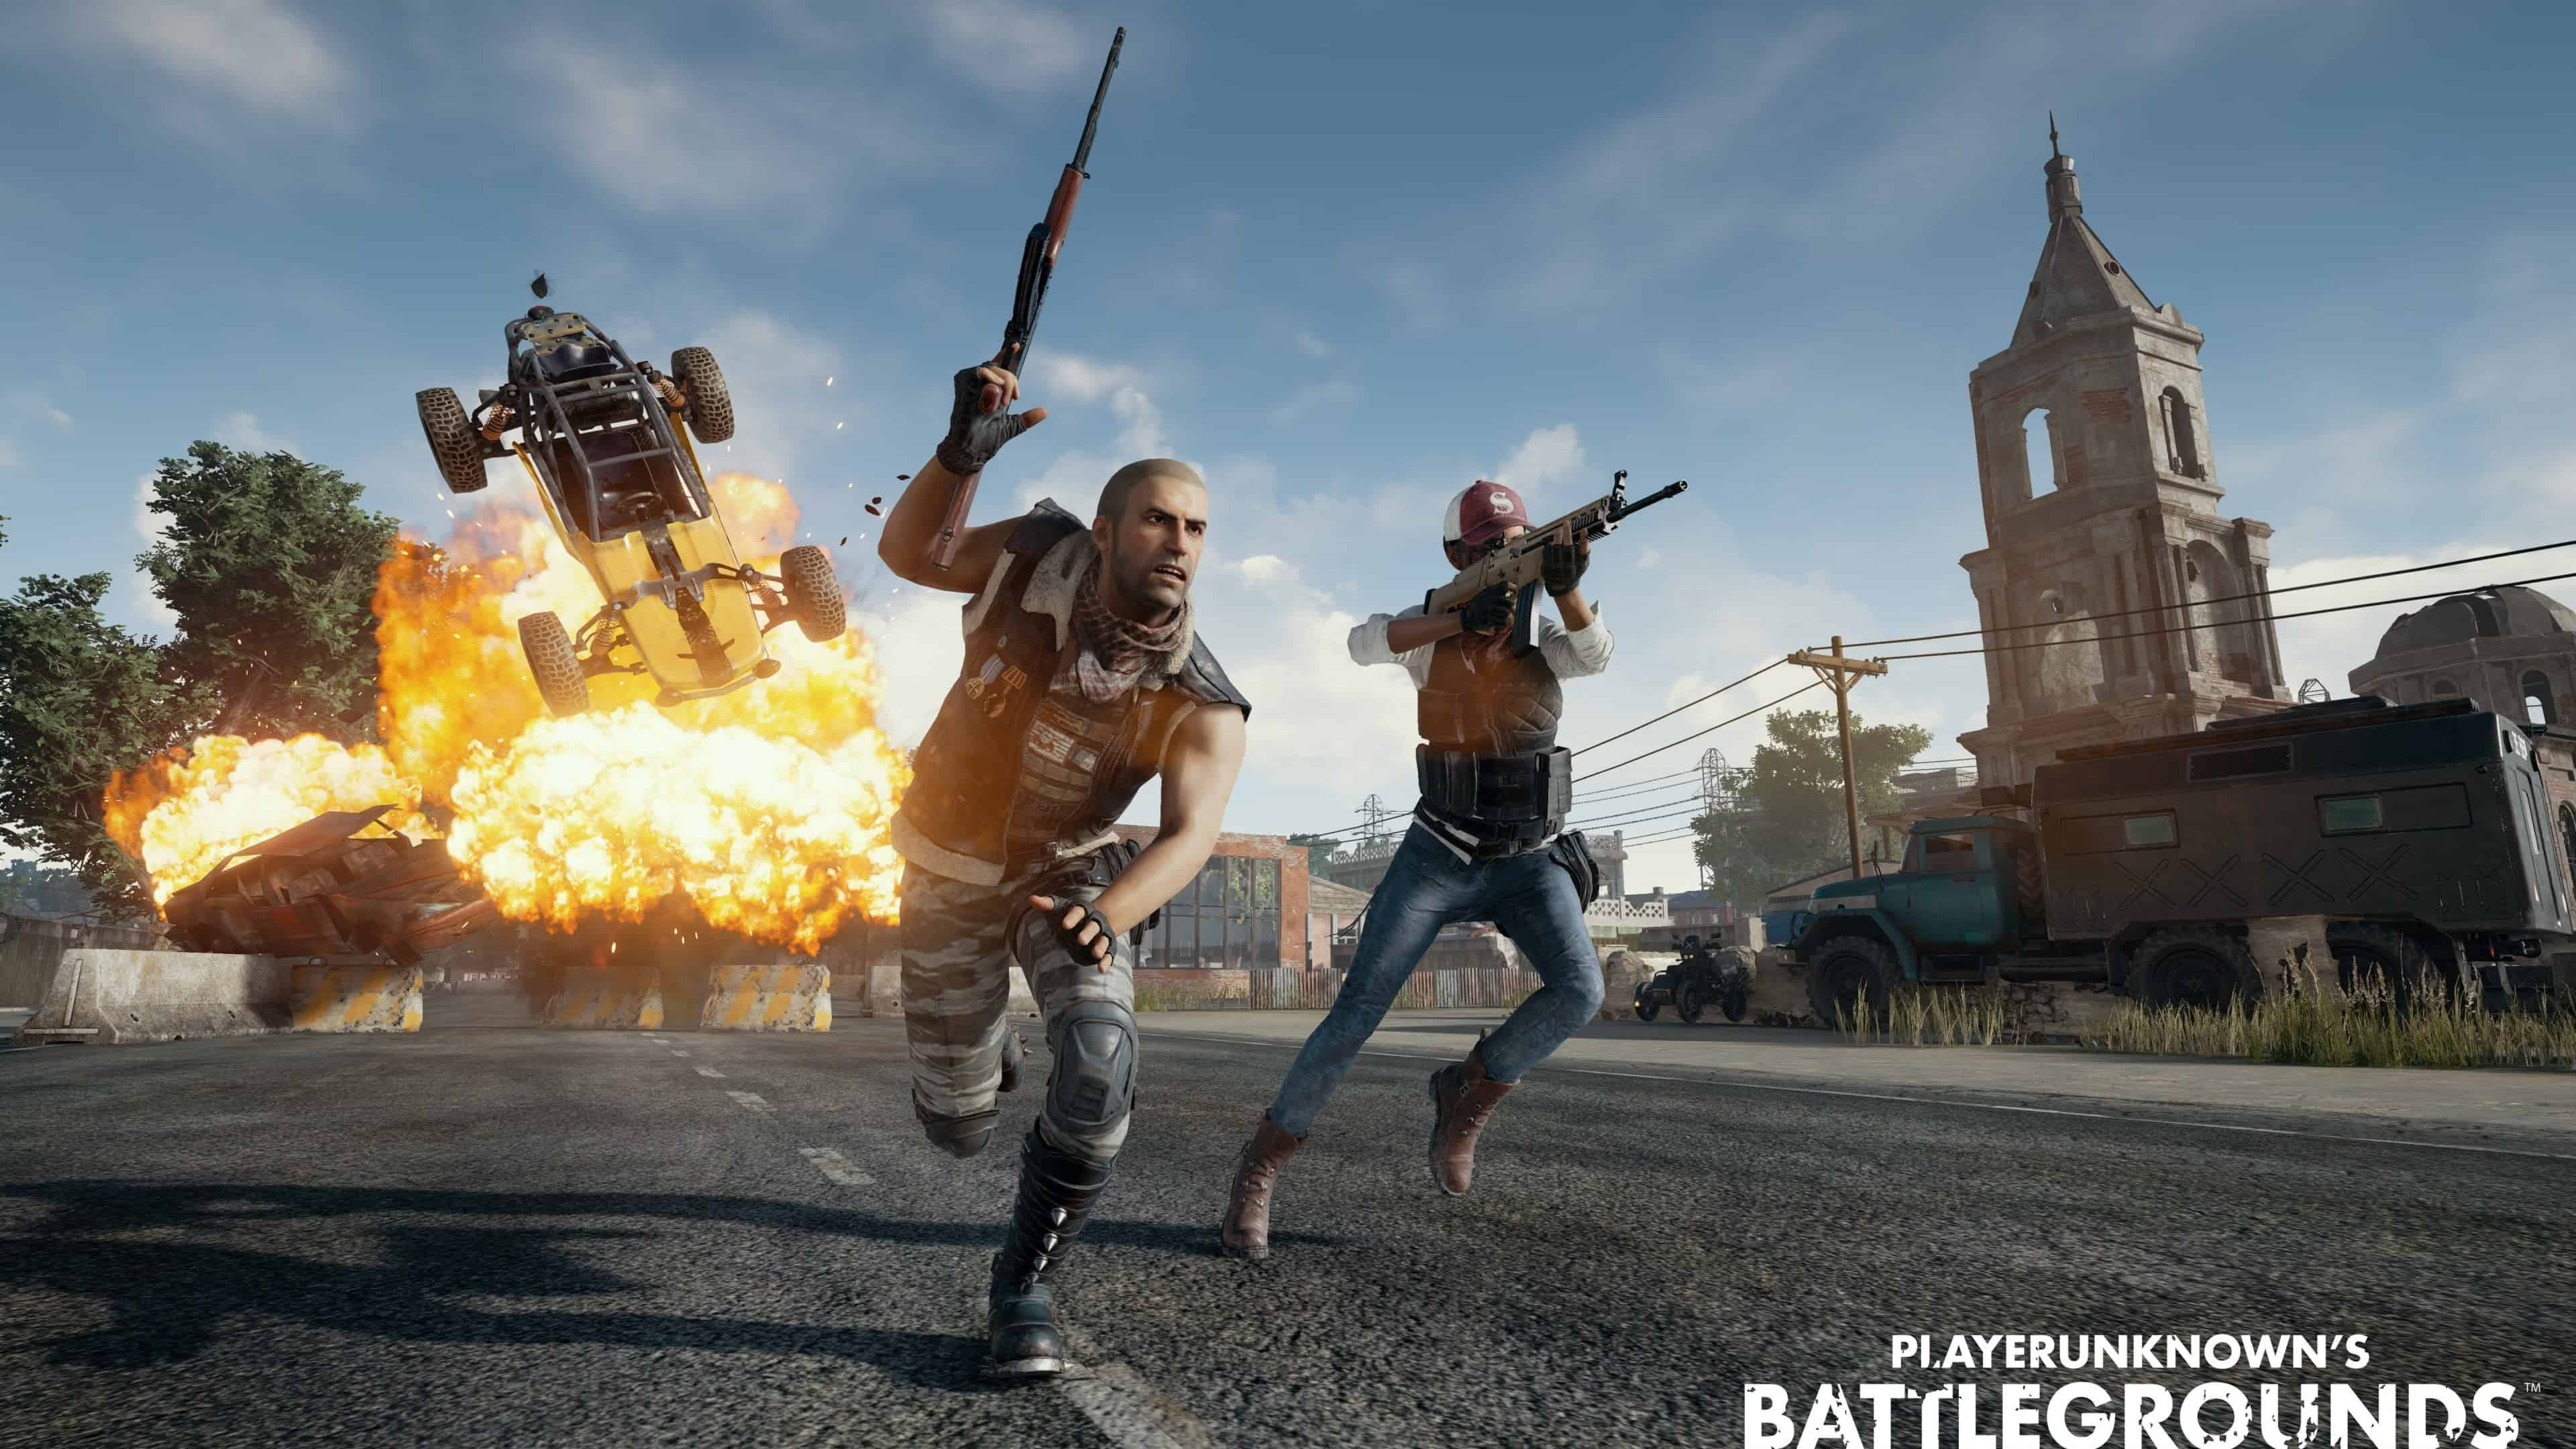 Pubg Multiplayer Pubg Player Unknown Battlegrounds Artwork Uhd 4k Wallpaper Pixelz